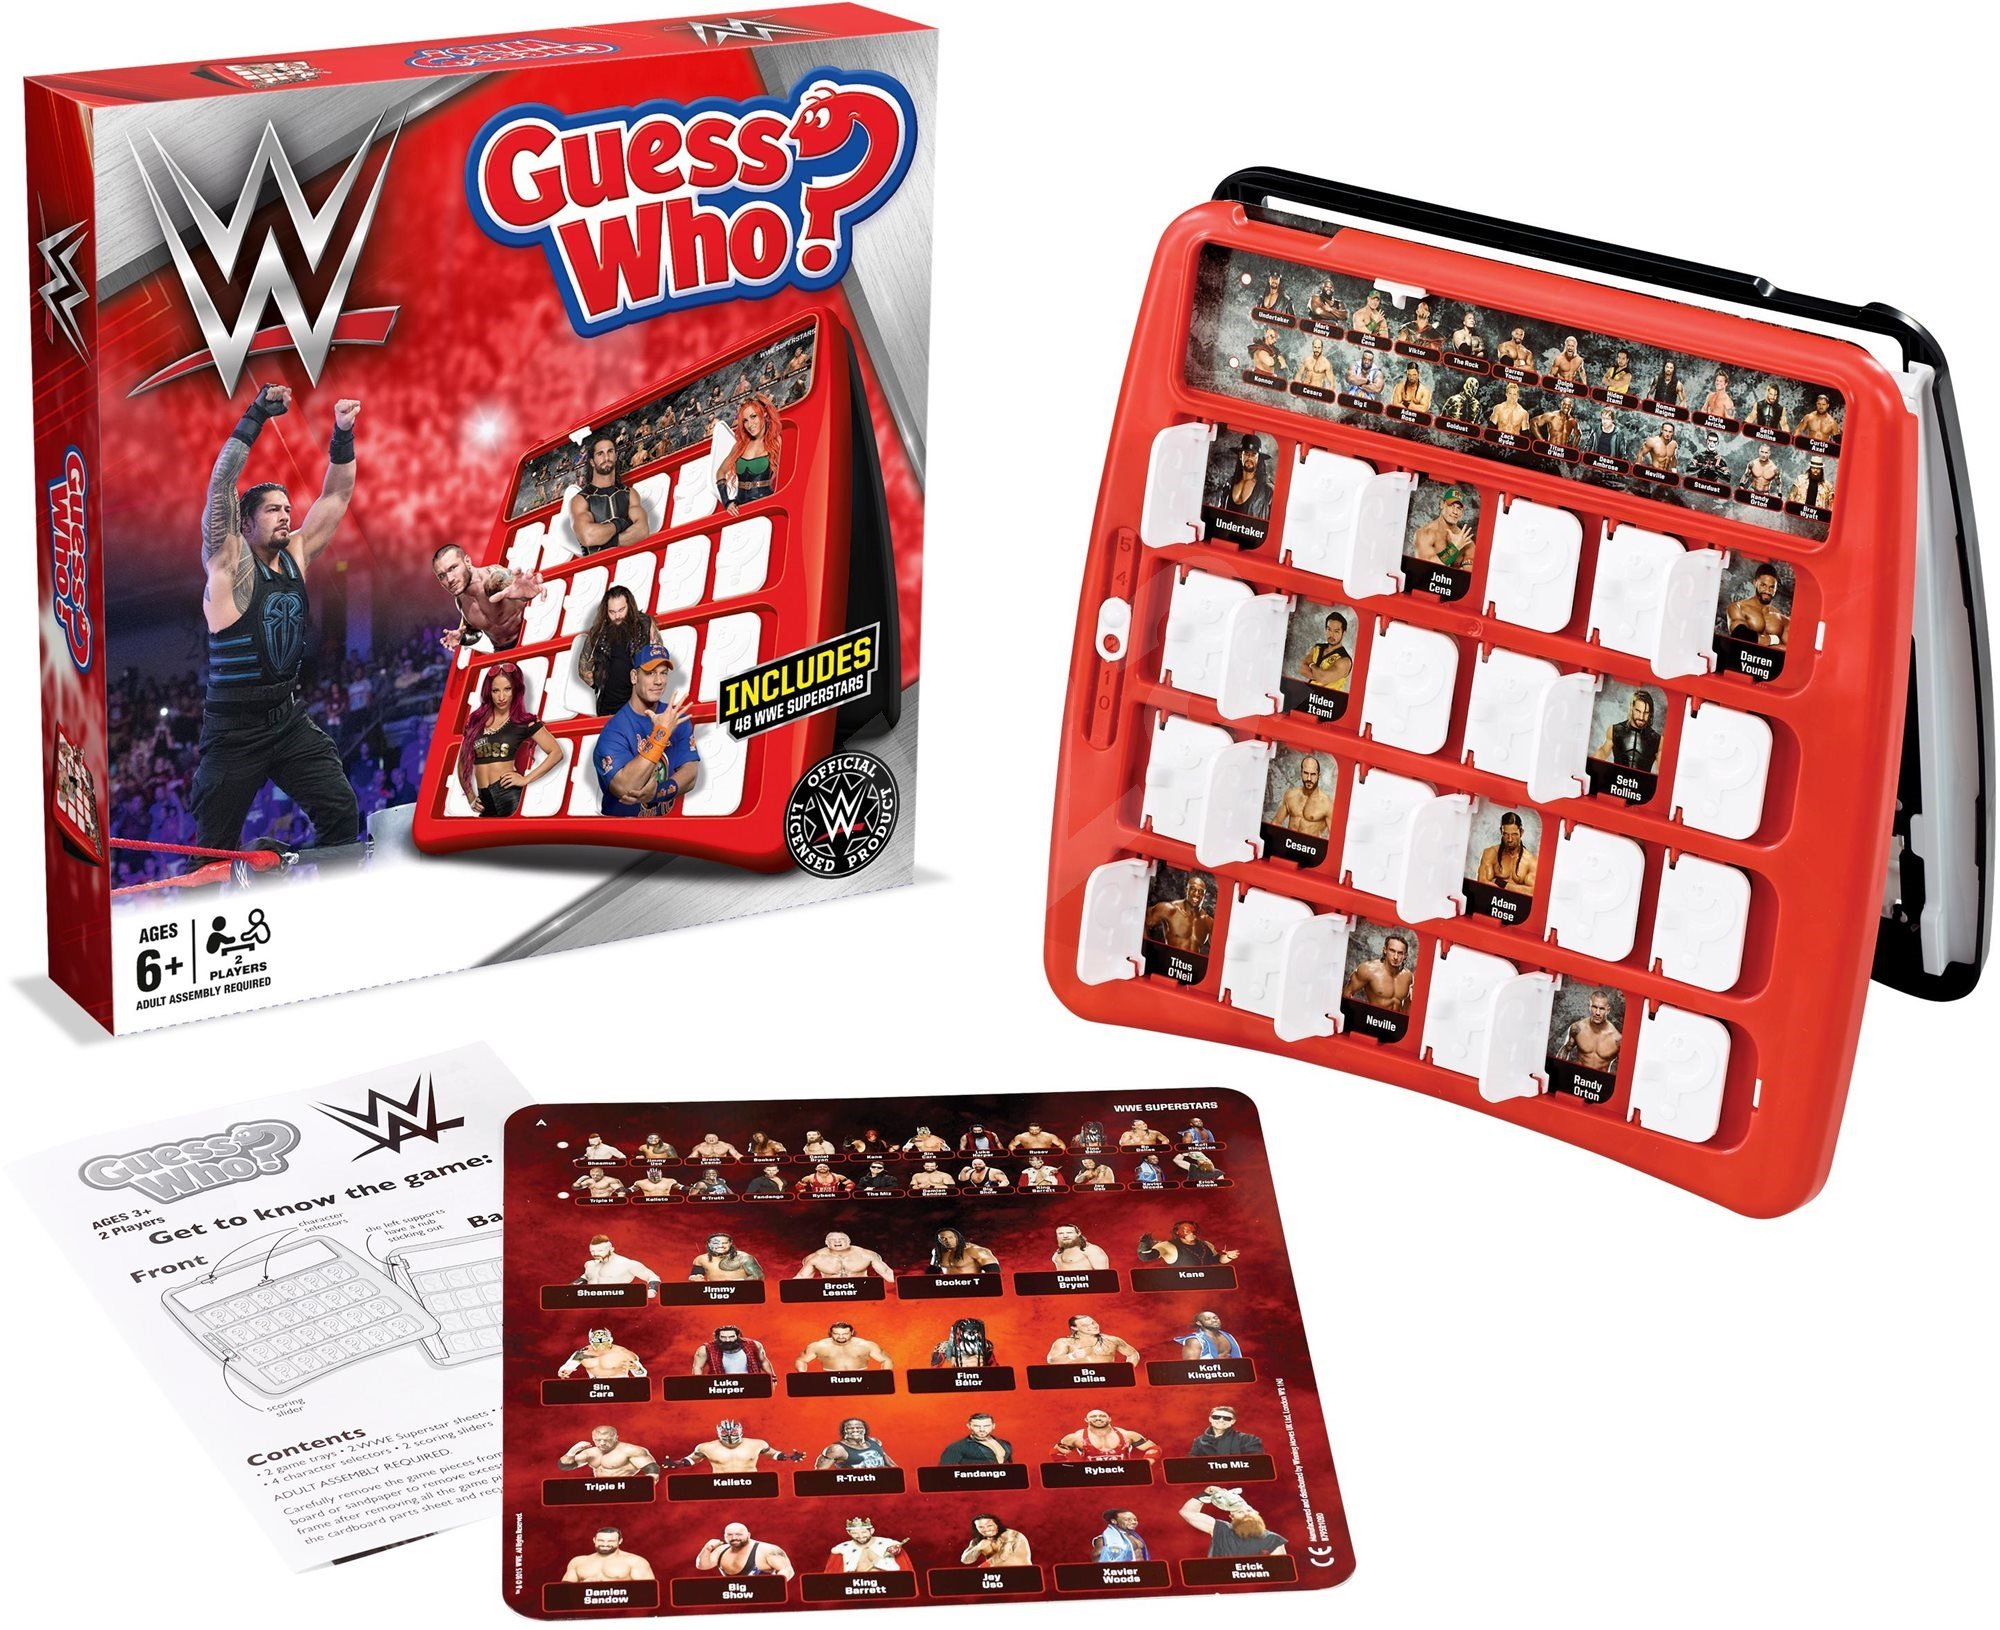 WWE Guess Who Game